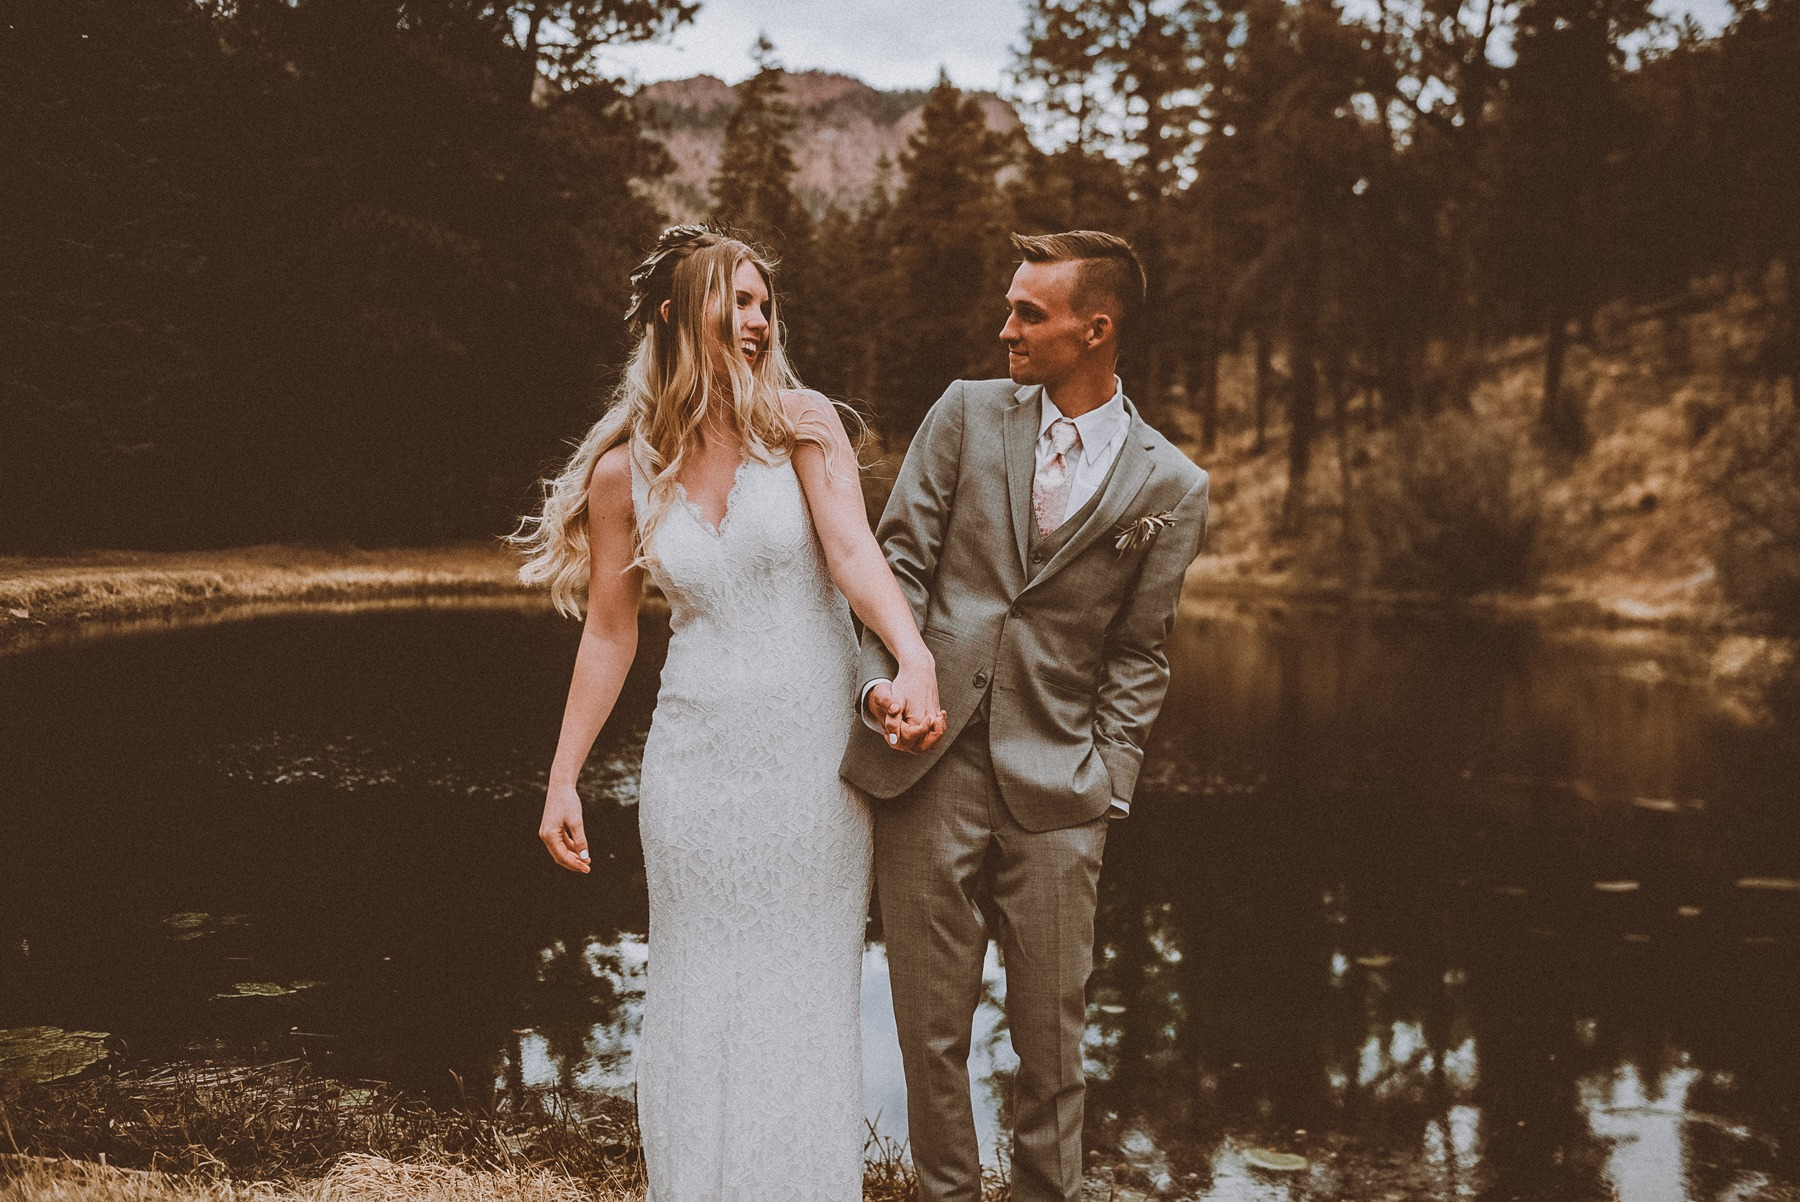 Elopement in New Mexico | New Mexico Elopement | Elope in New Mexico | Ashley Joyce Photography 2020